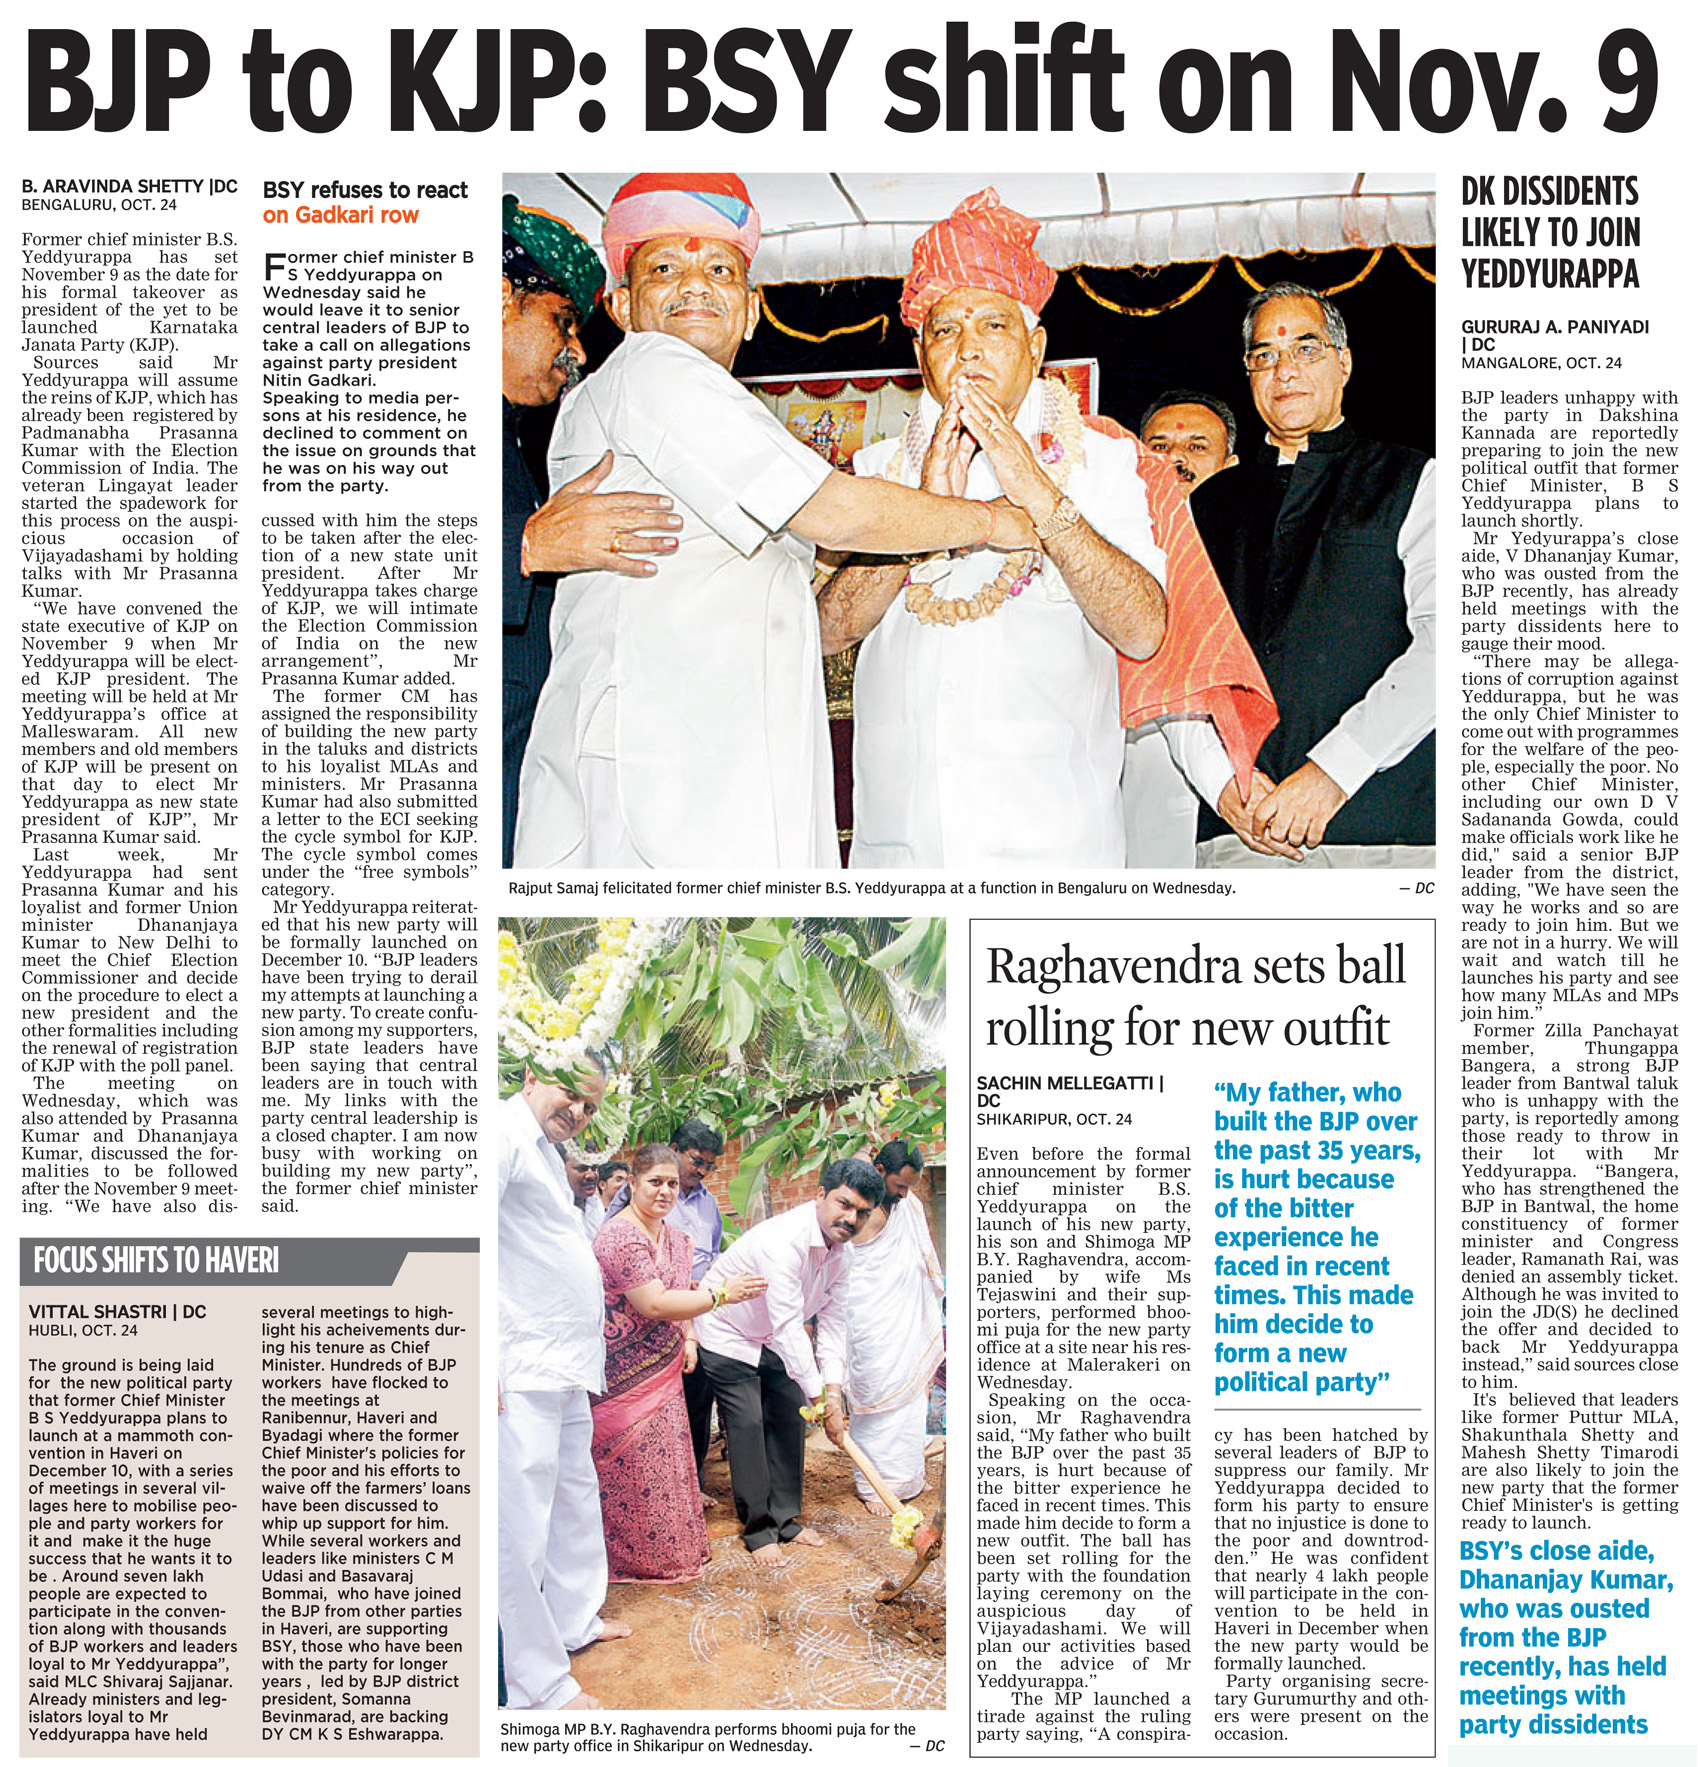 BJP to KJP: BSY shift on Nov.9